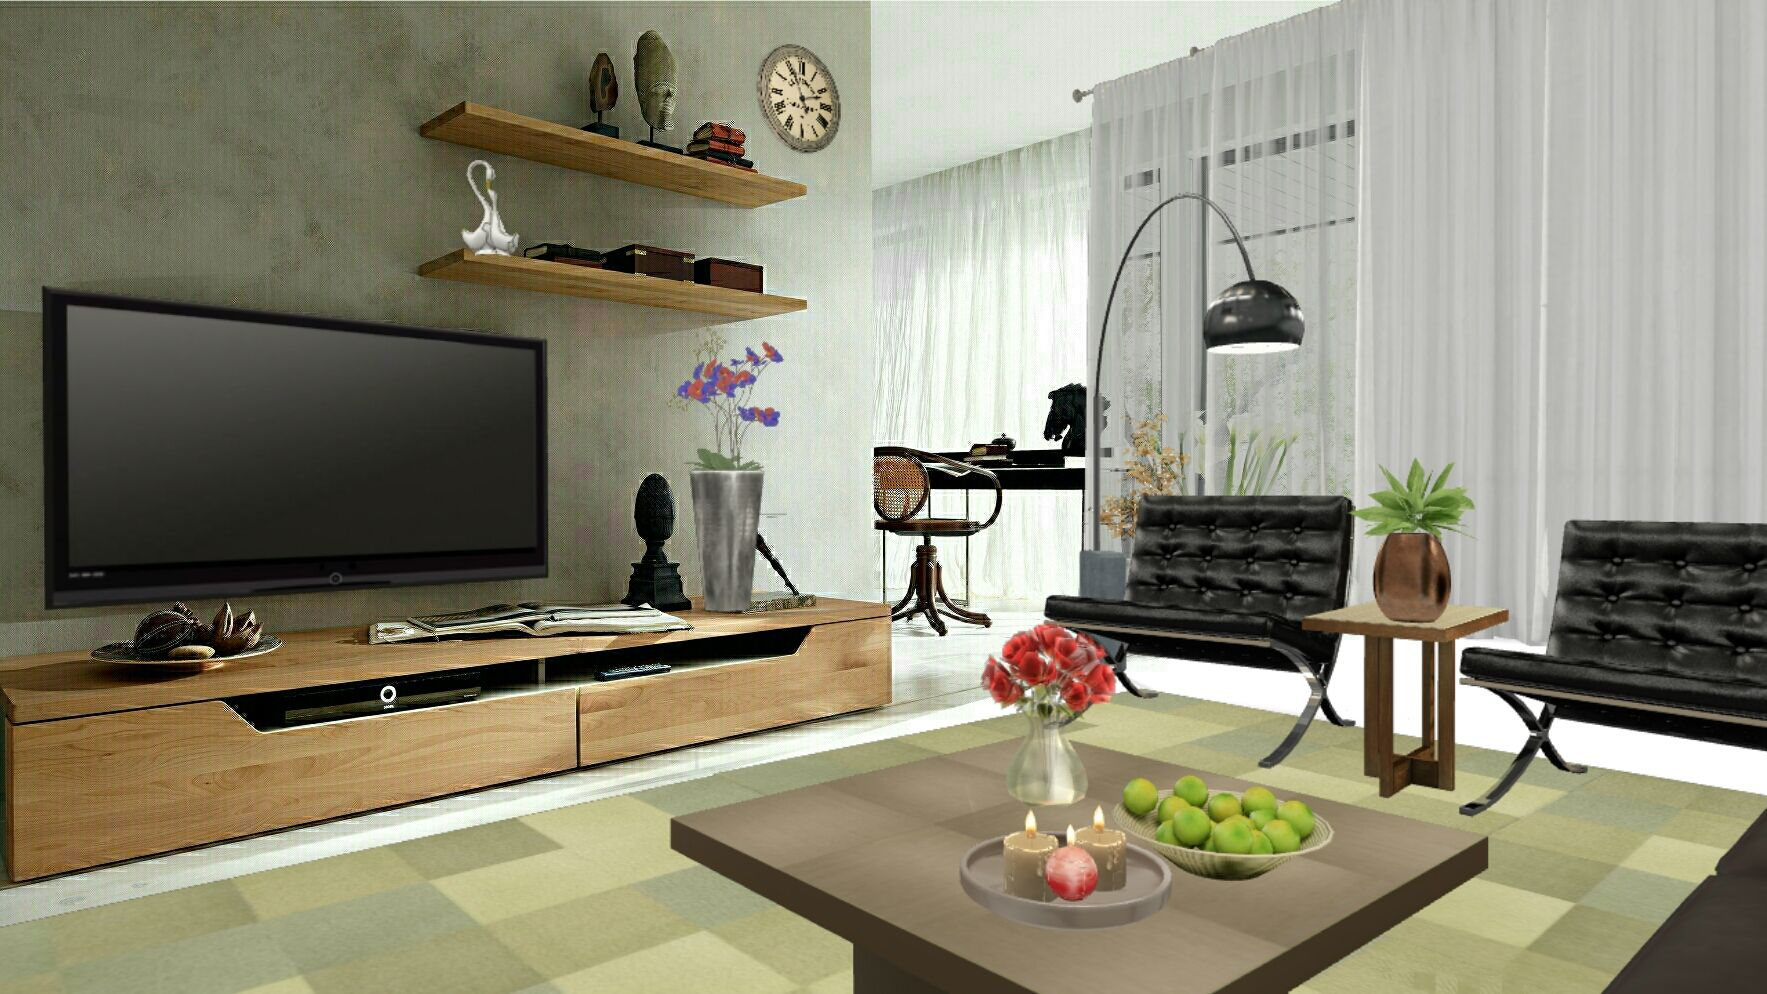 Simple TV Wallliving room design from Autodesk Homestyler designer